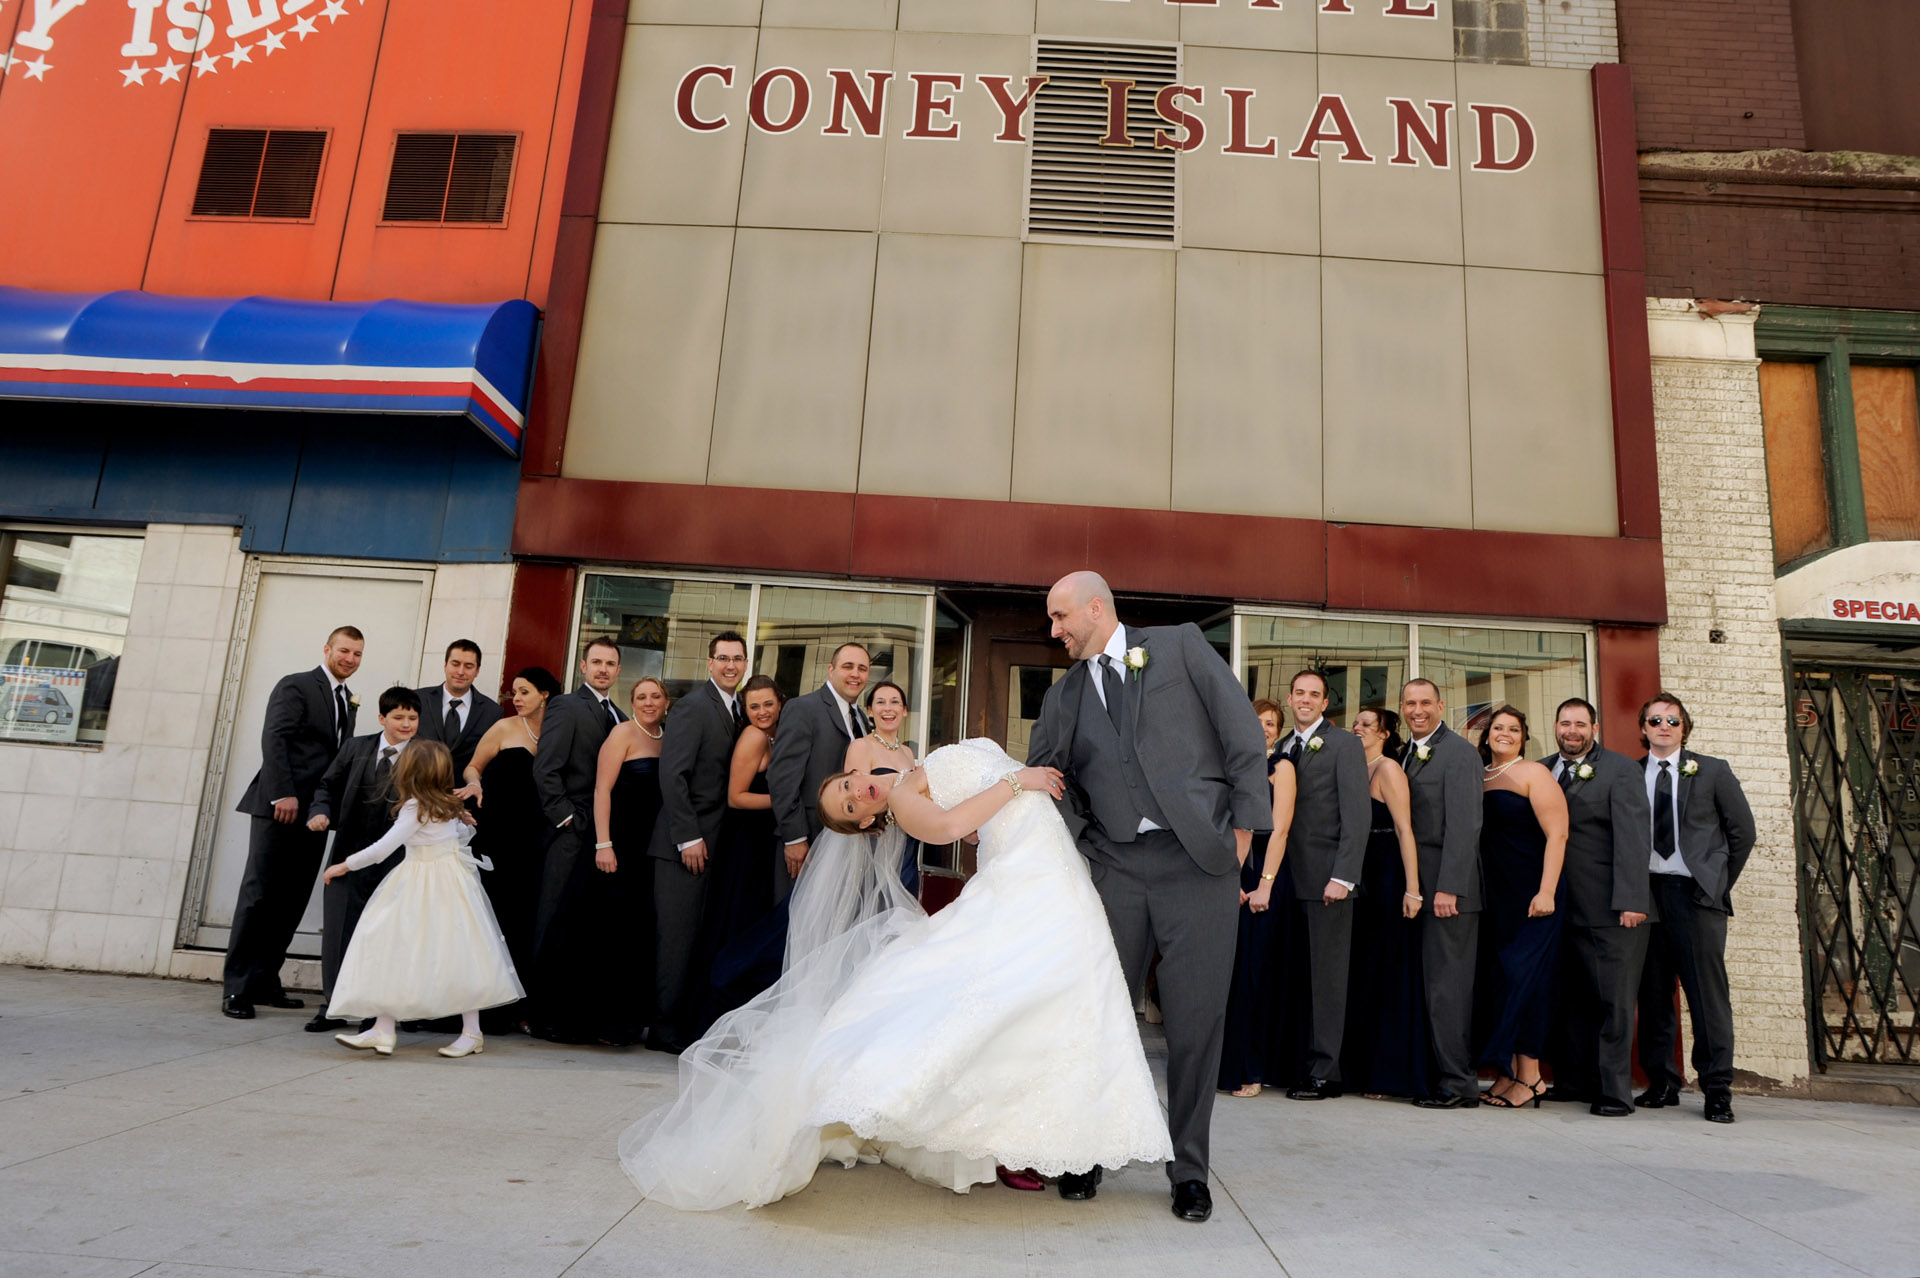 Detroit, Michigan wedding photographer's photo of the wedding party in front of Lafayette Coney Island in Detroit, Michigan.